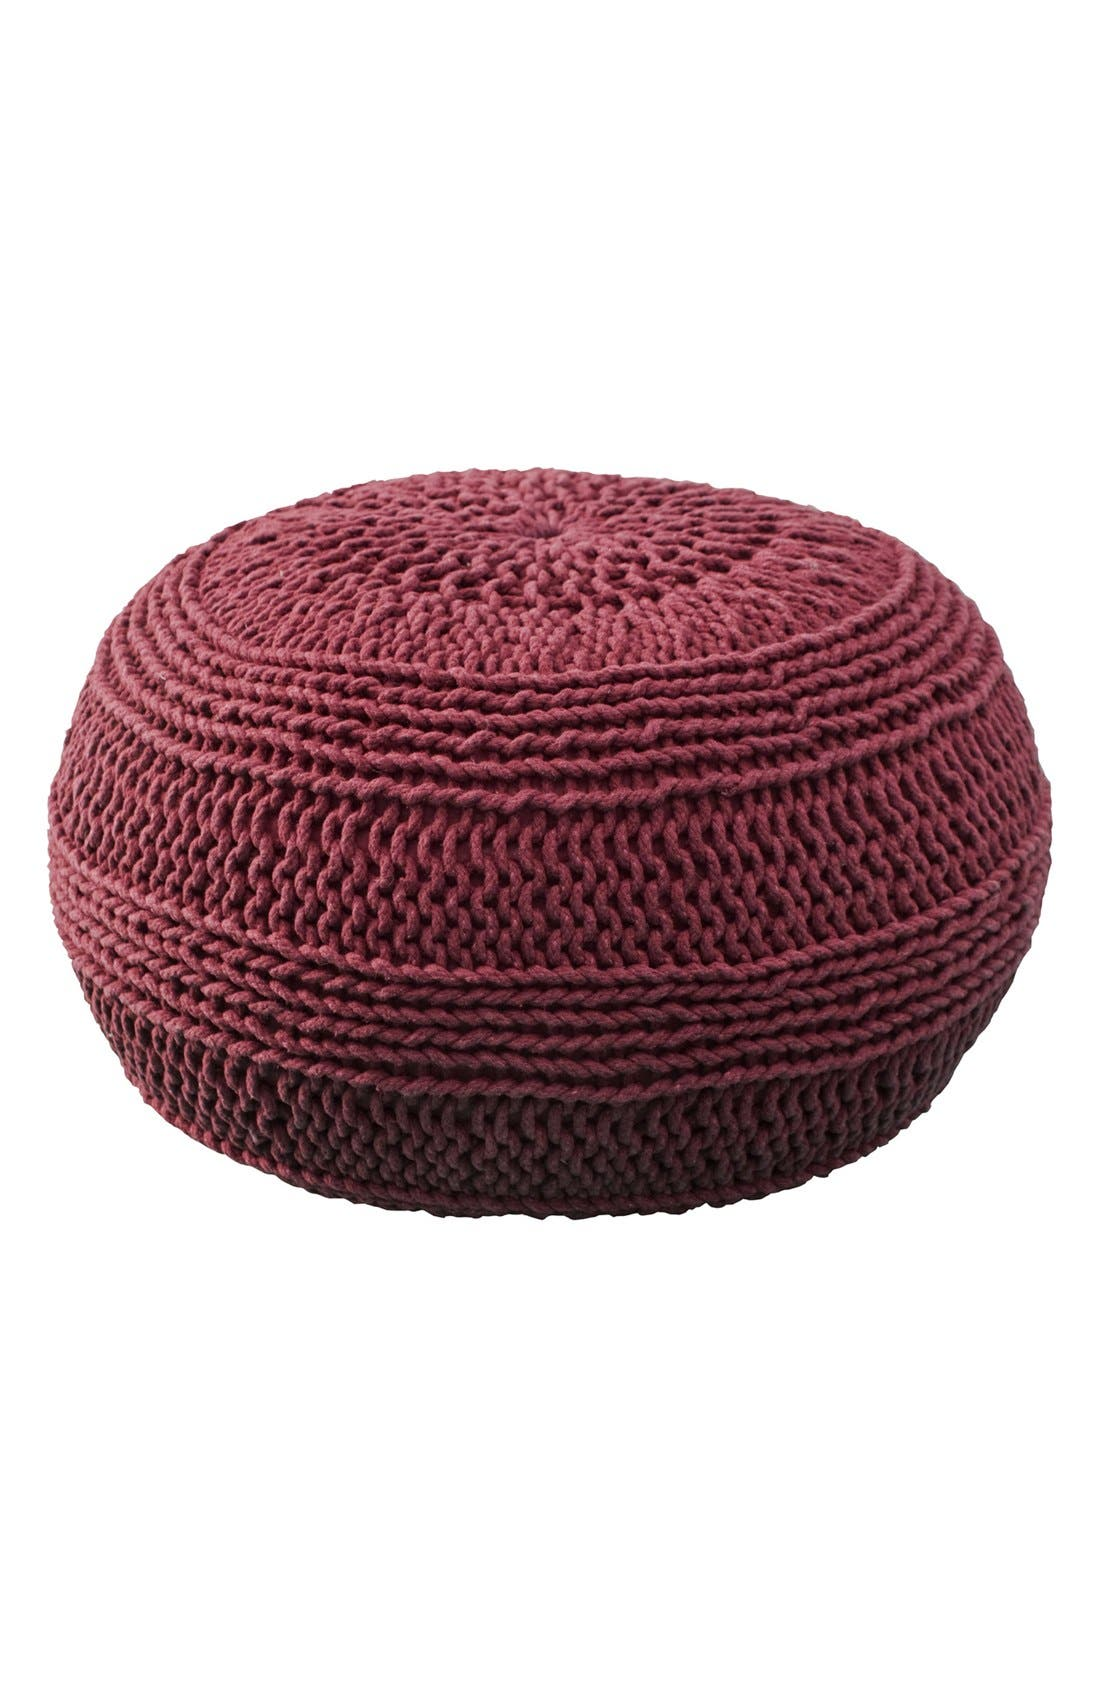 Woven Pouf,                         Main,                         color, Red